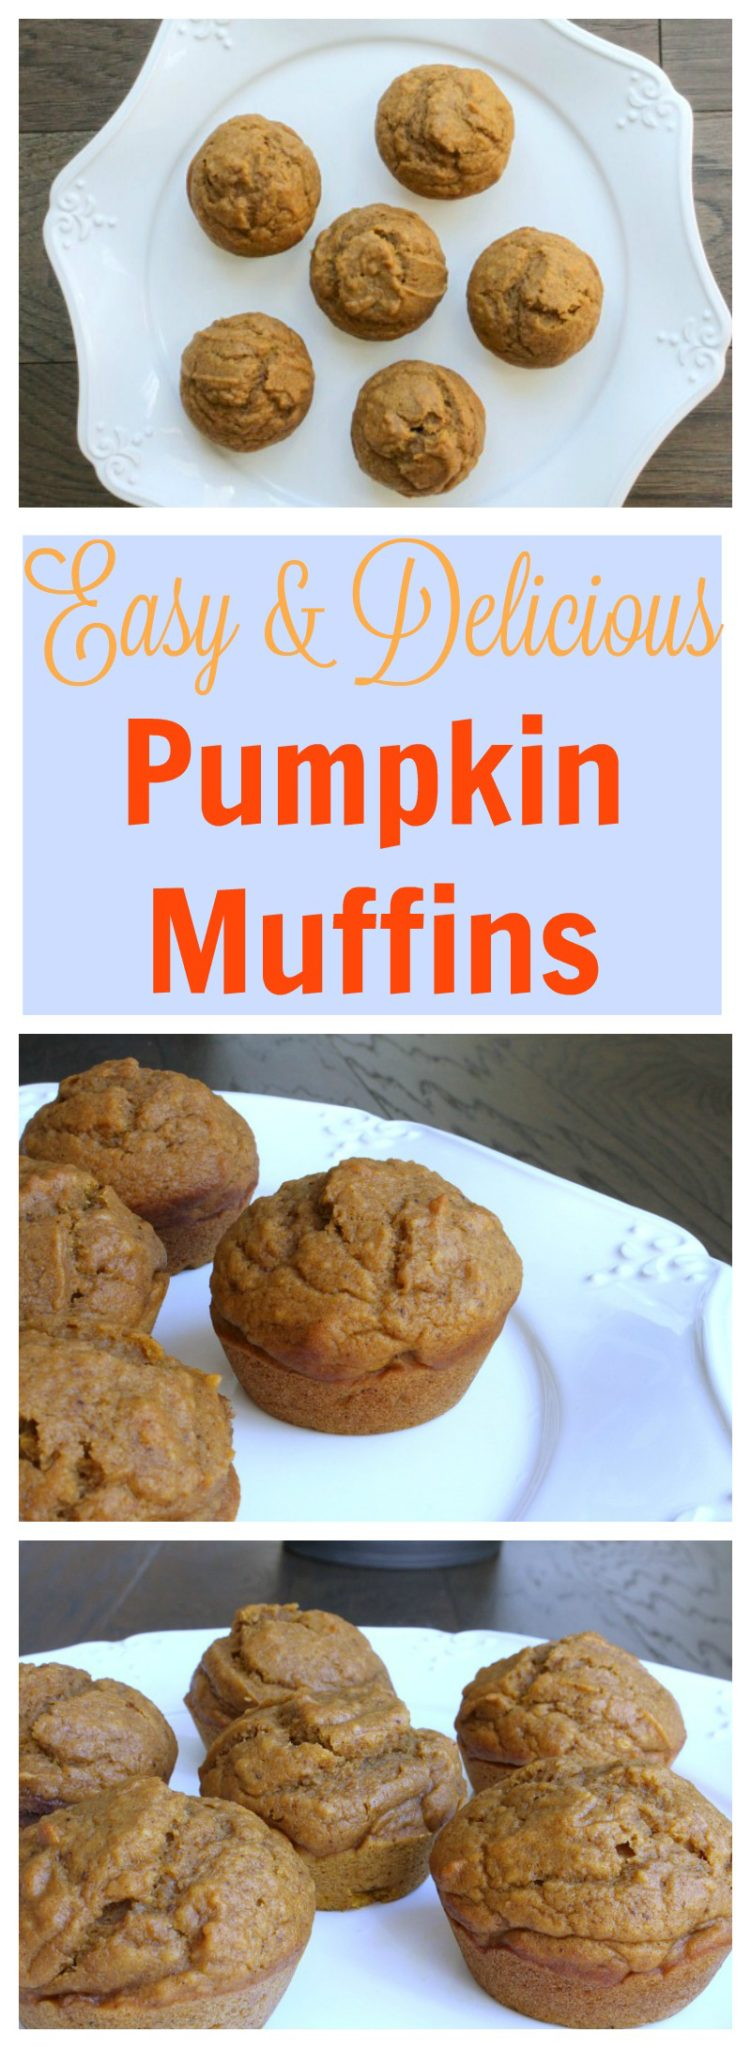 These pumpkin muffins are quick to put together, aren't overly sweet and evoke all that is fall.